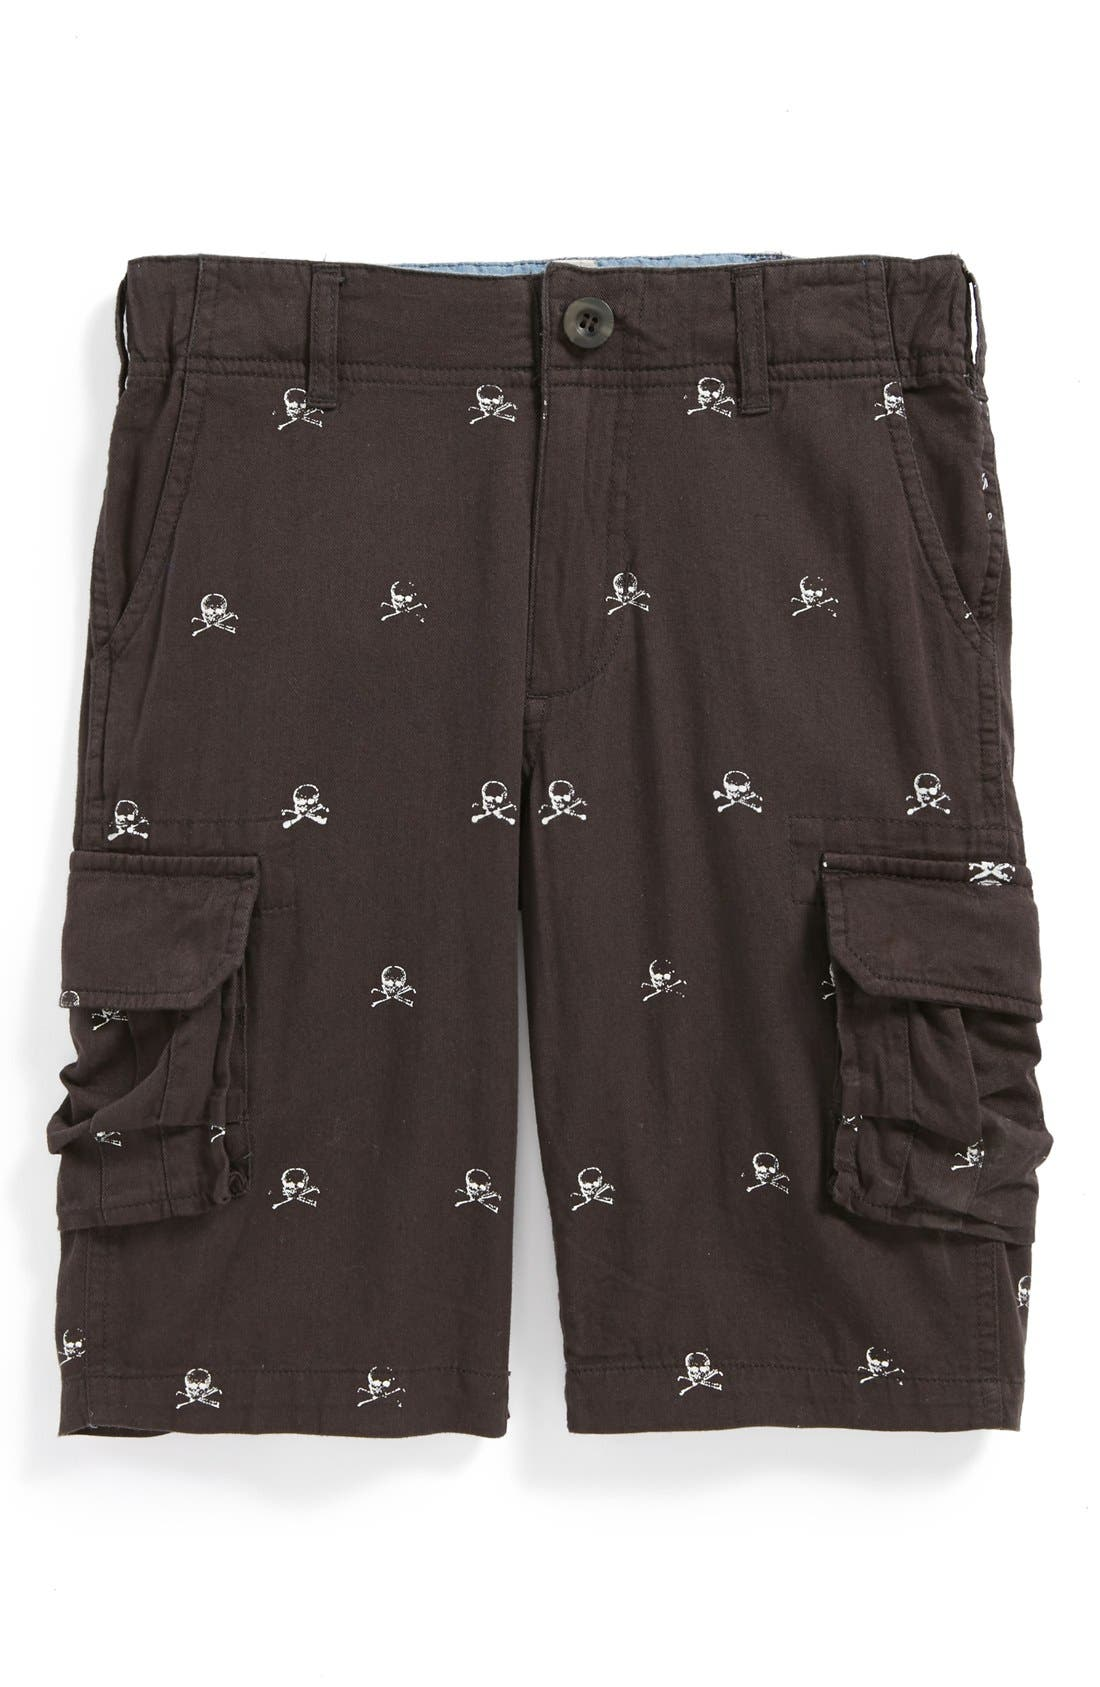 Main Image - Peek 'Skull' Cargo Shorts (Toddler Boys, Little Boys & Big Boys)